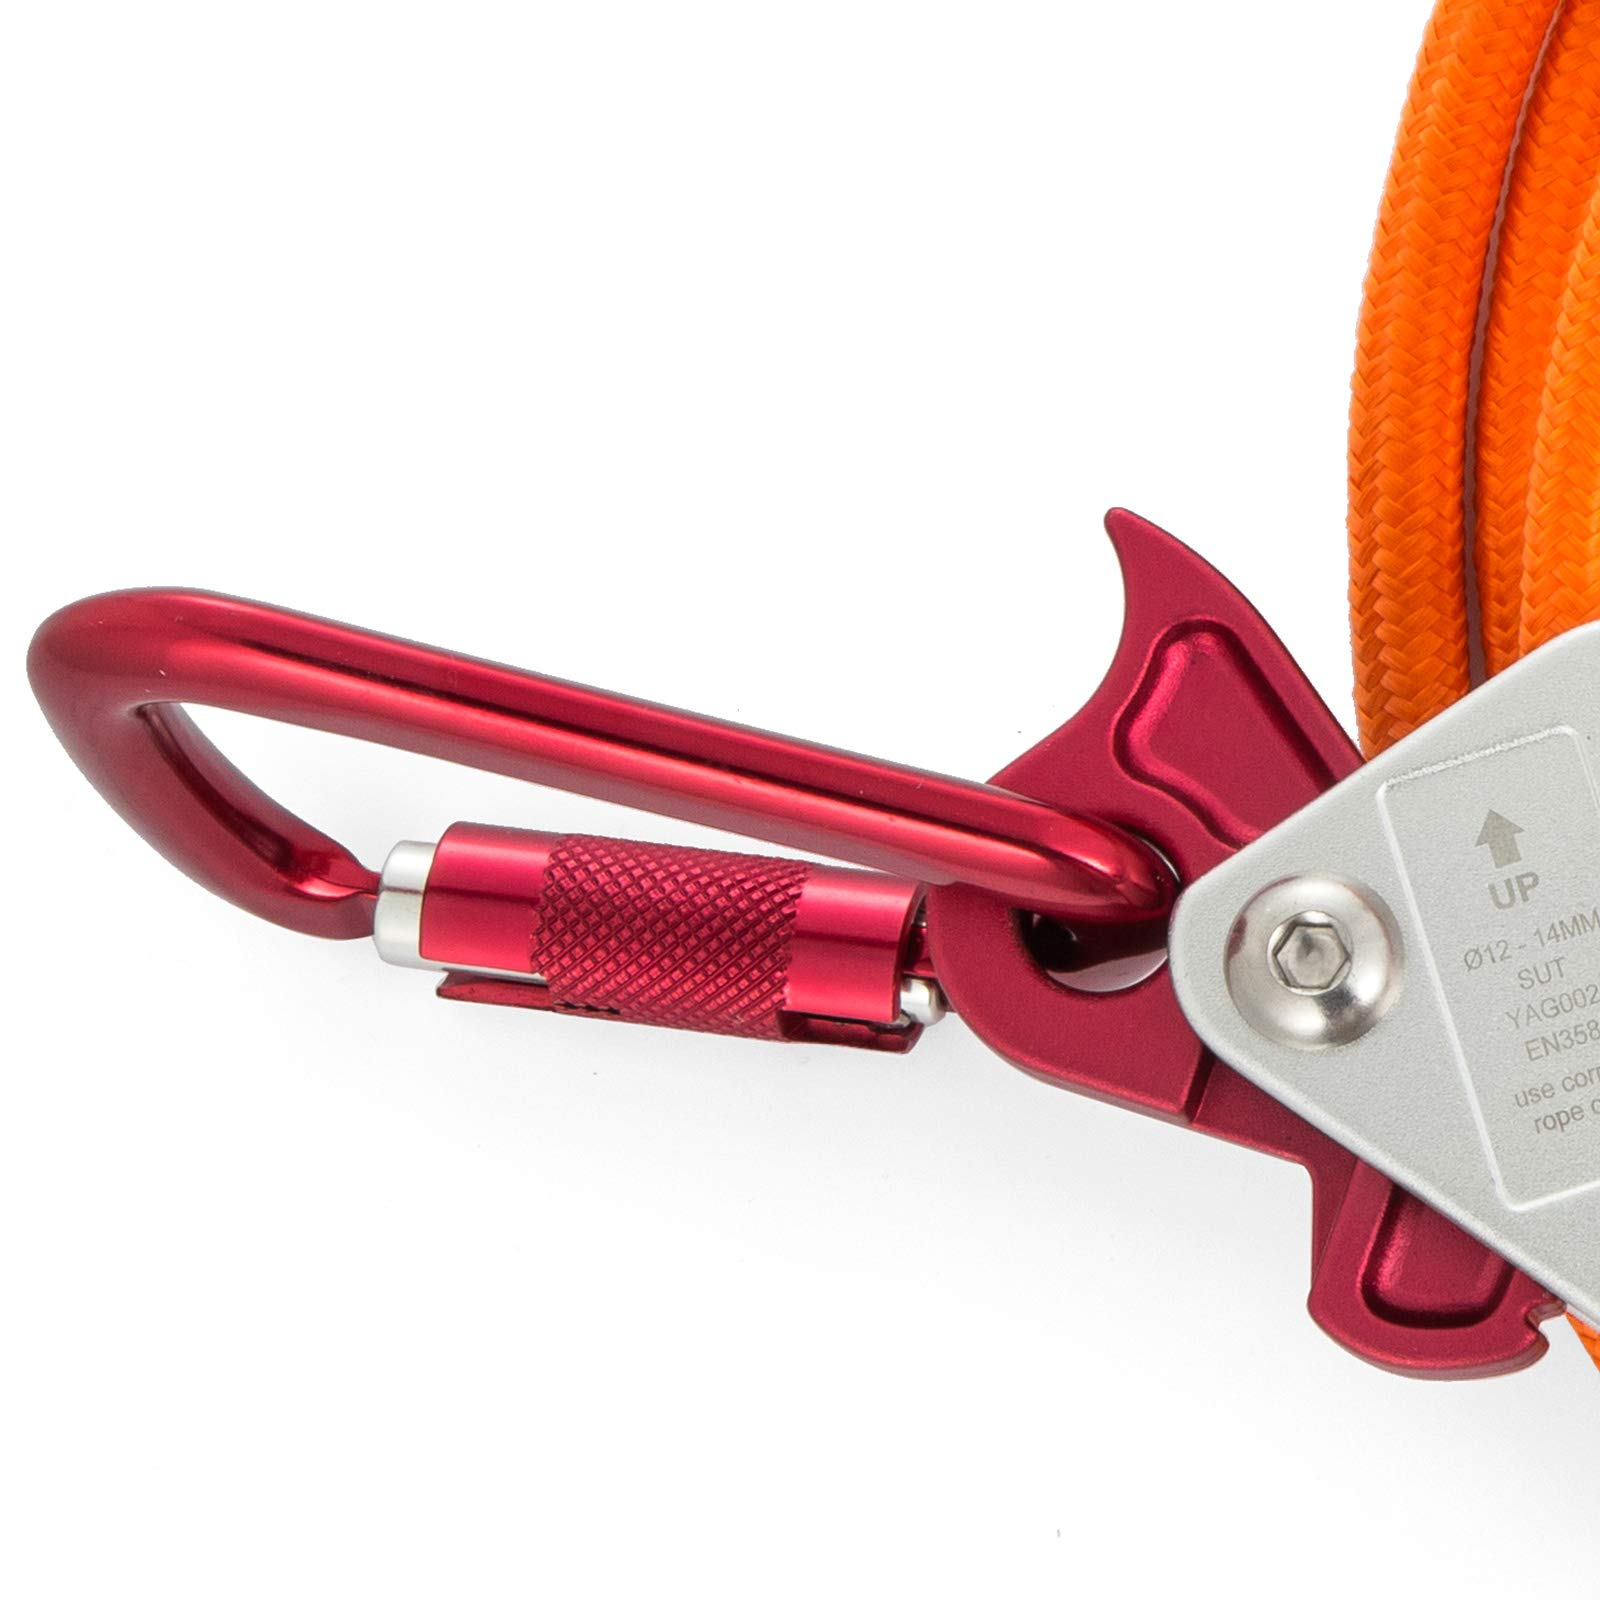 Happybuy Steel Wire Core Flip Line Kit 1/2'' X 8' Wire Core Flipline with Triple Lock Carabiner and Steel Swivel Snap Wire Core Flipline System for Arborists Climbers Tree Climbers (1/2'' X 8') by Happybuy (Image #7)